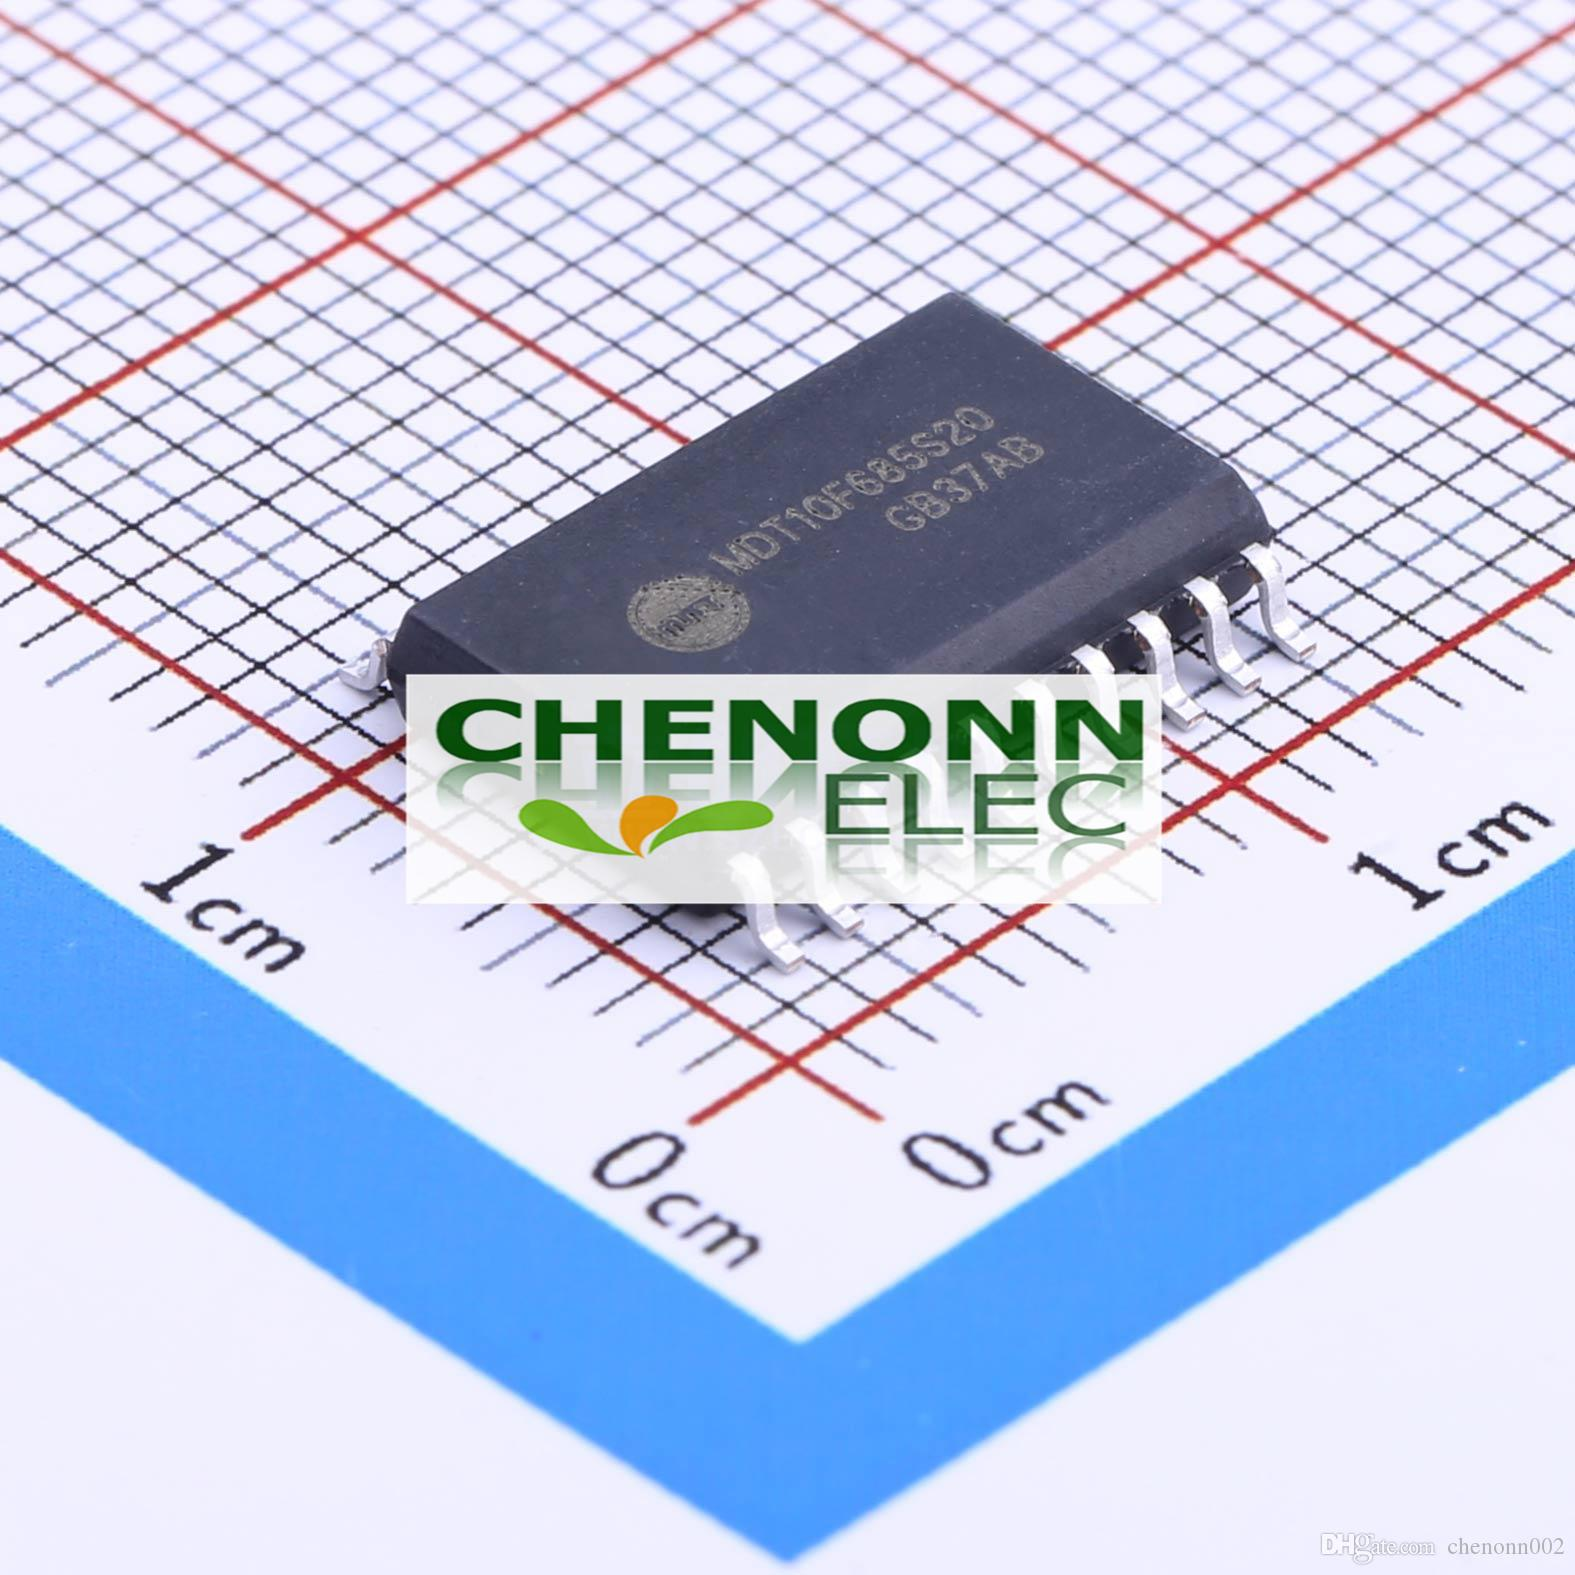 2018 Cpu Microcontroller Mdt10f685 Sop 20 Industrial Electronic Circuit Diagram Of A Active Components Integrated Drop Shipping From Chenonn002 058